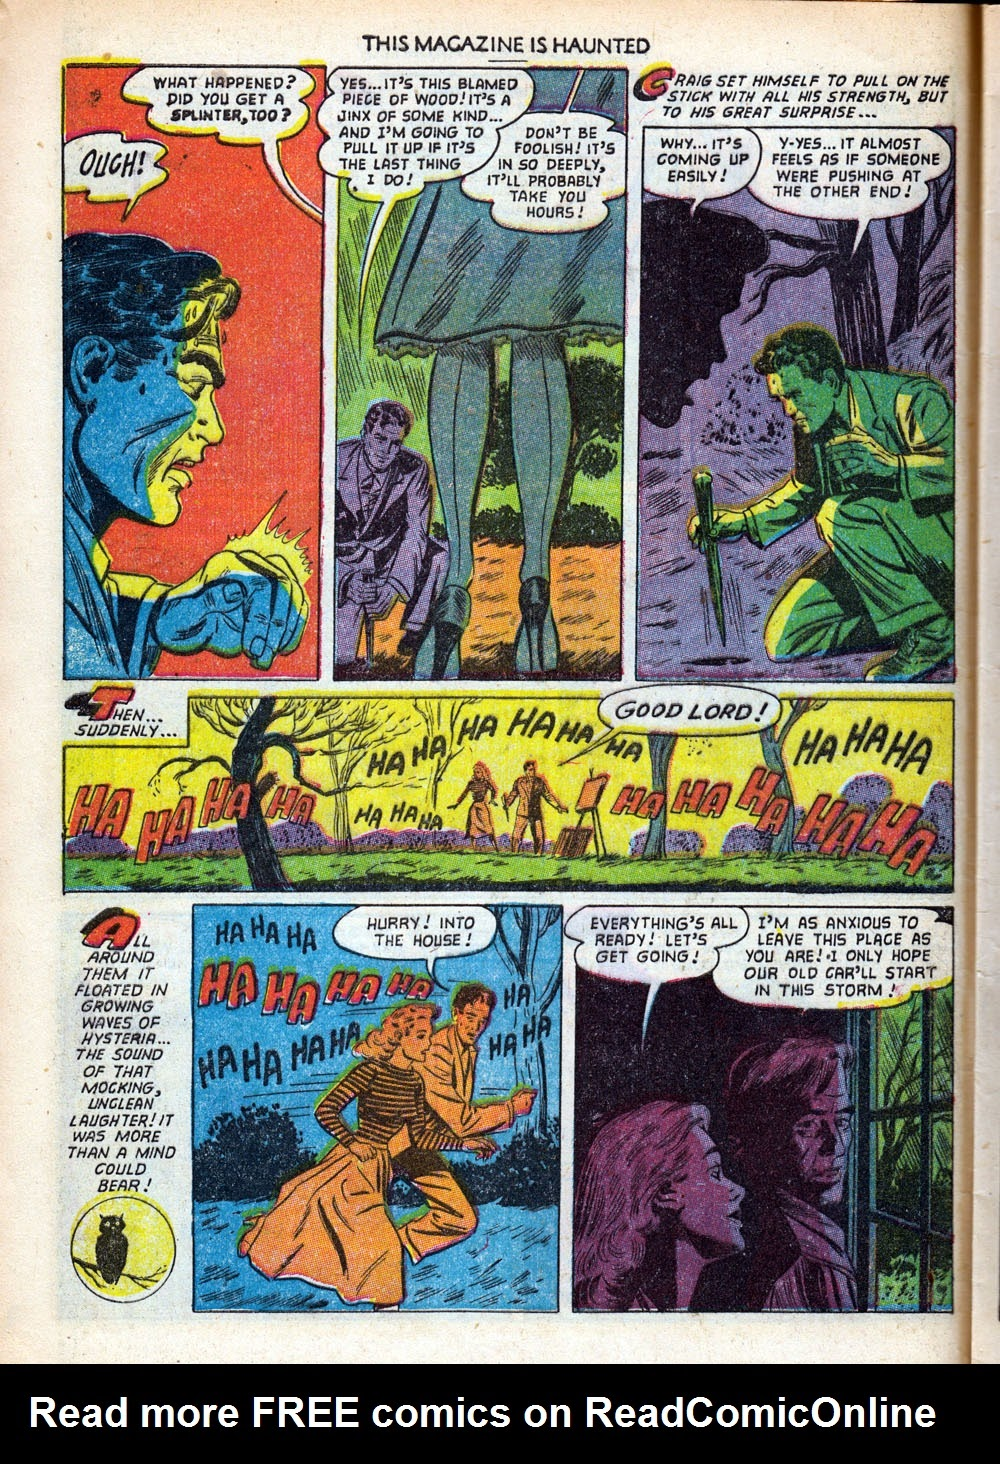 Read online This Magazine Is Haunted comic -  Issue #9 - 8